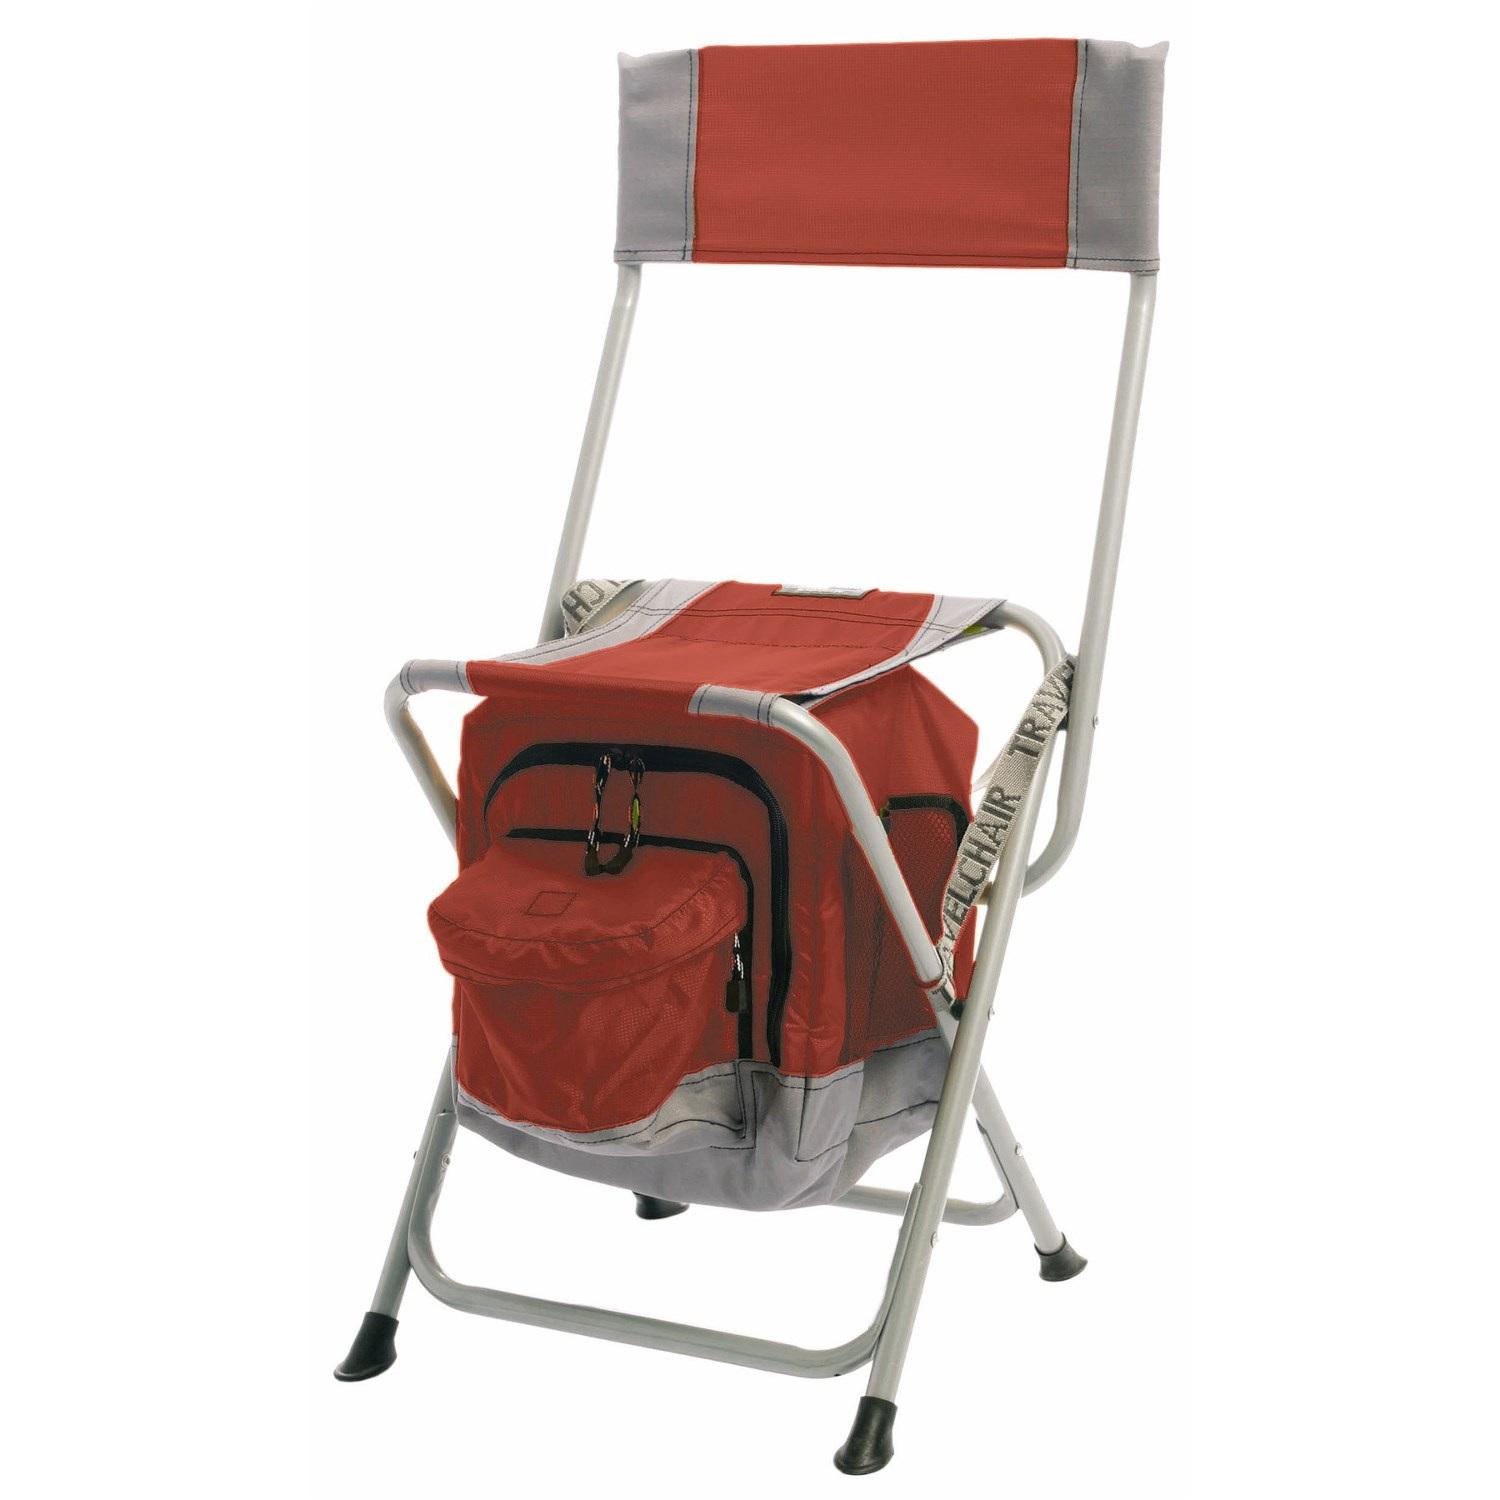 TravelChair Anywhere Folding Chair with Cooler Save 59%